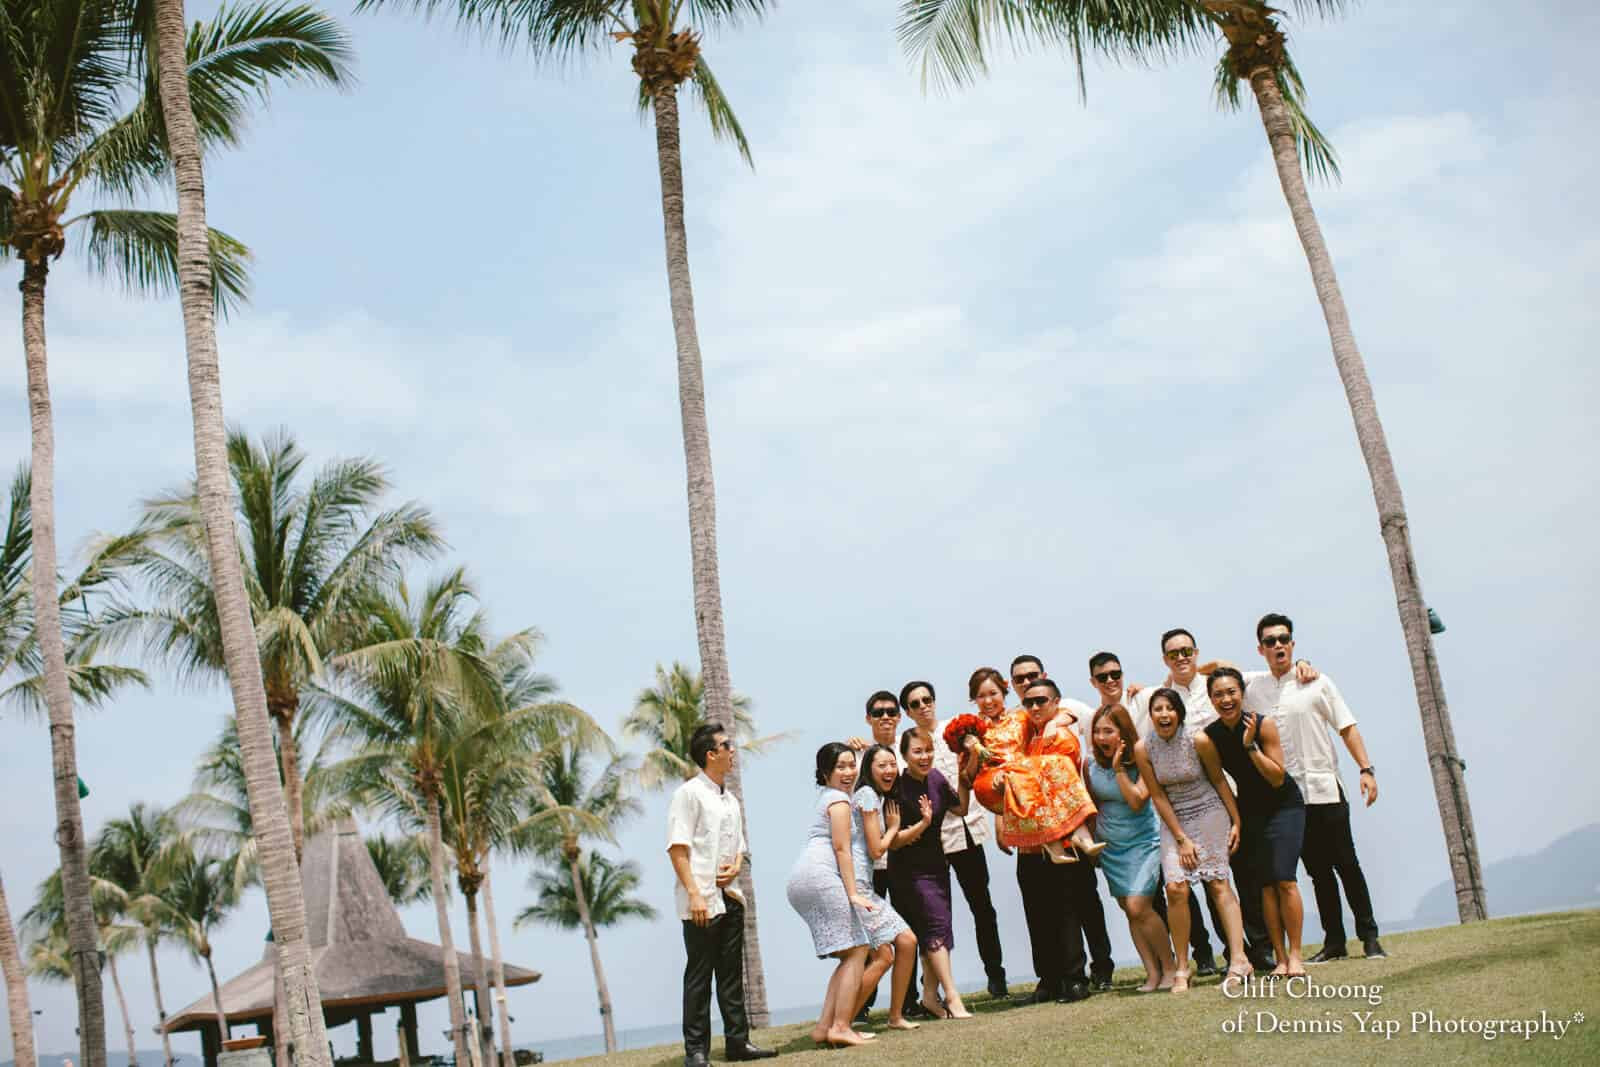 Wedding Day in Kota Kinabalu Sabah Malaysia Shangri-La Tanjung Aru Resort and Spa Cliff Choong Photography groom bride entourage bridal party